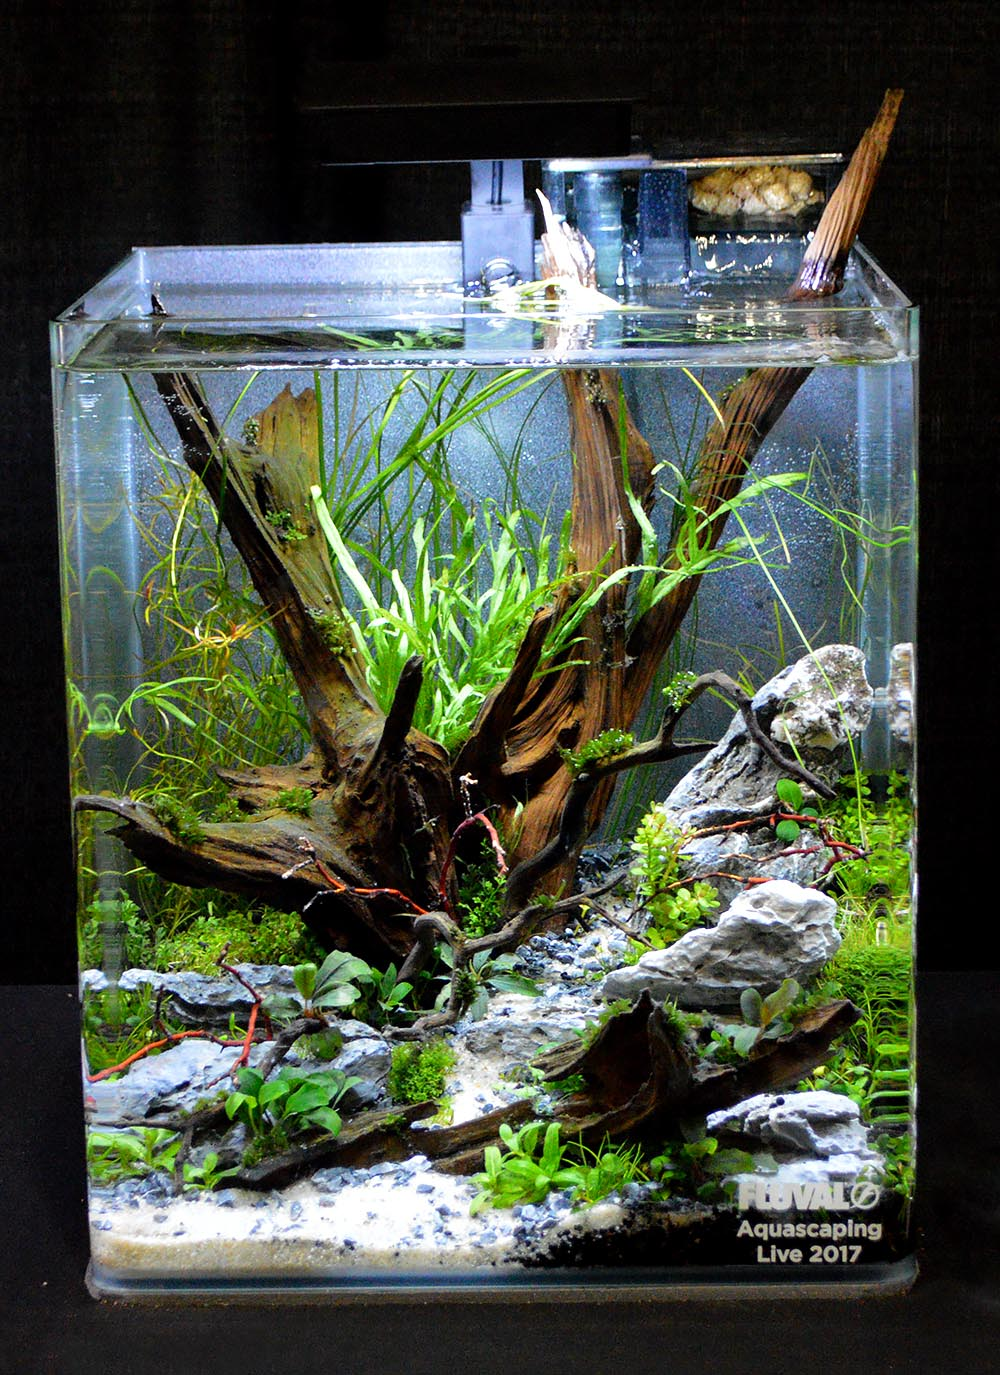 Aquascape by Amanda Elridge